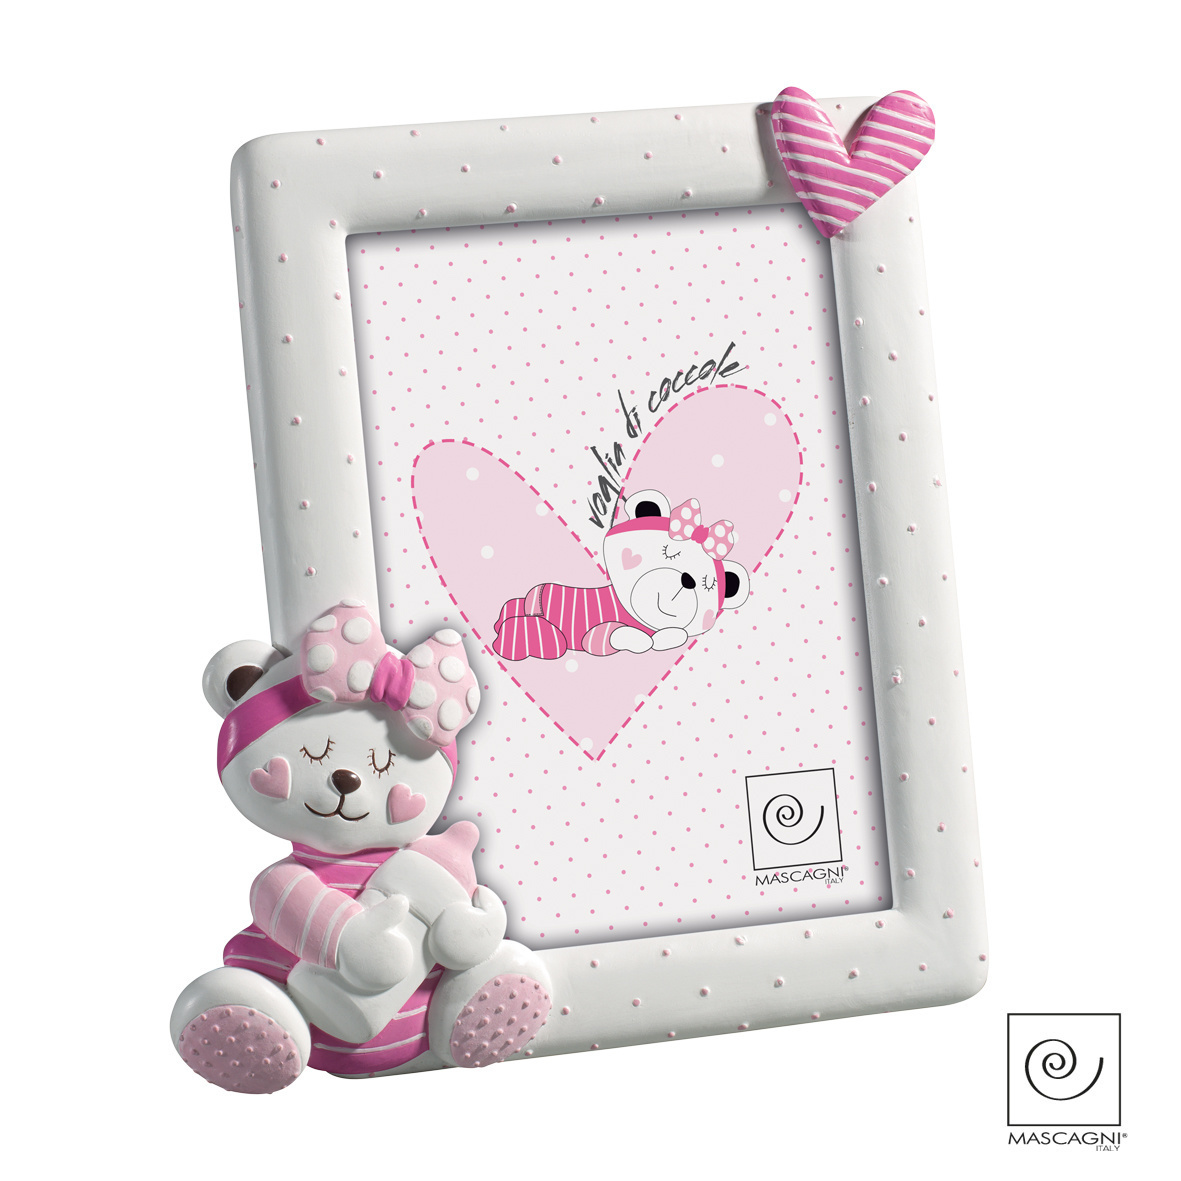 Art Mascagni A449 PHOTO FRAME 13X18 - COL.PINK